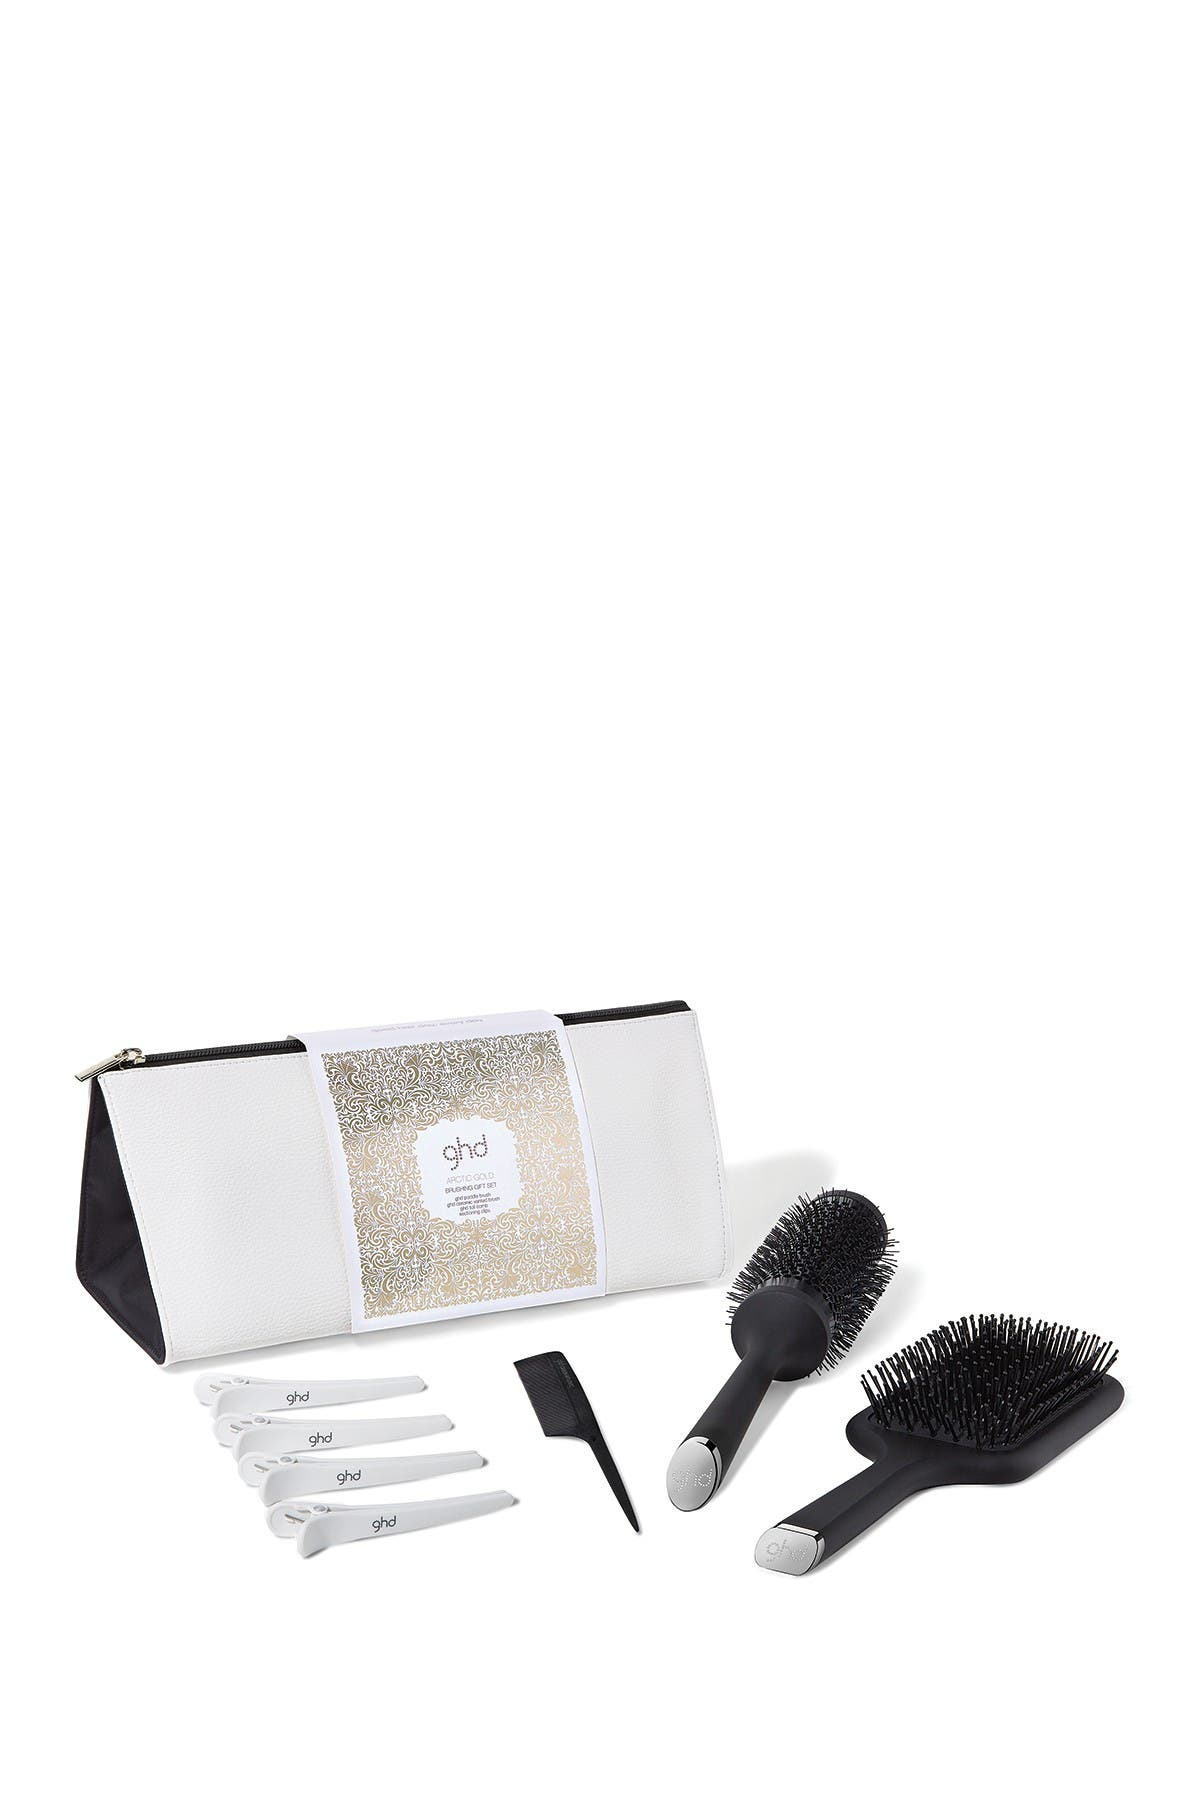 Image of ghd Gift with Purchase